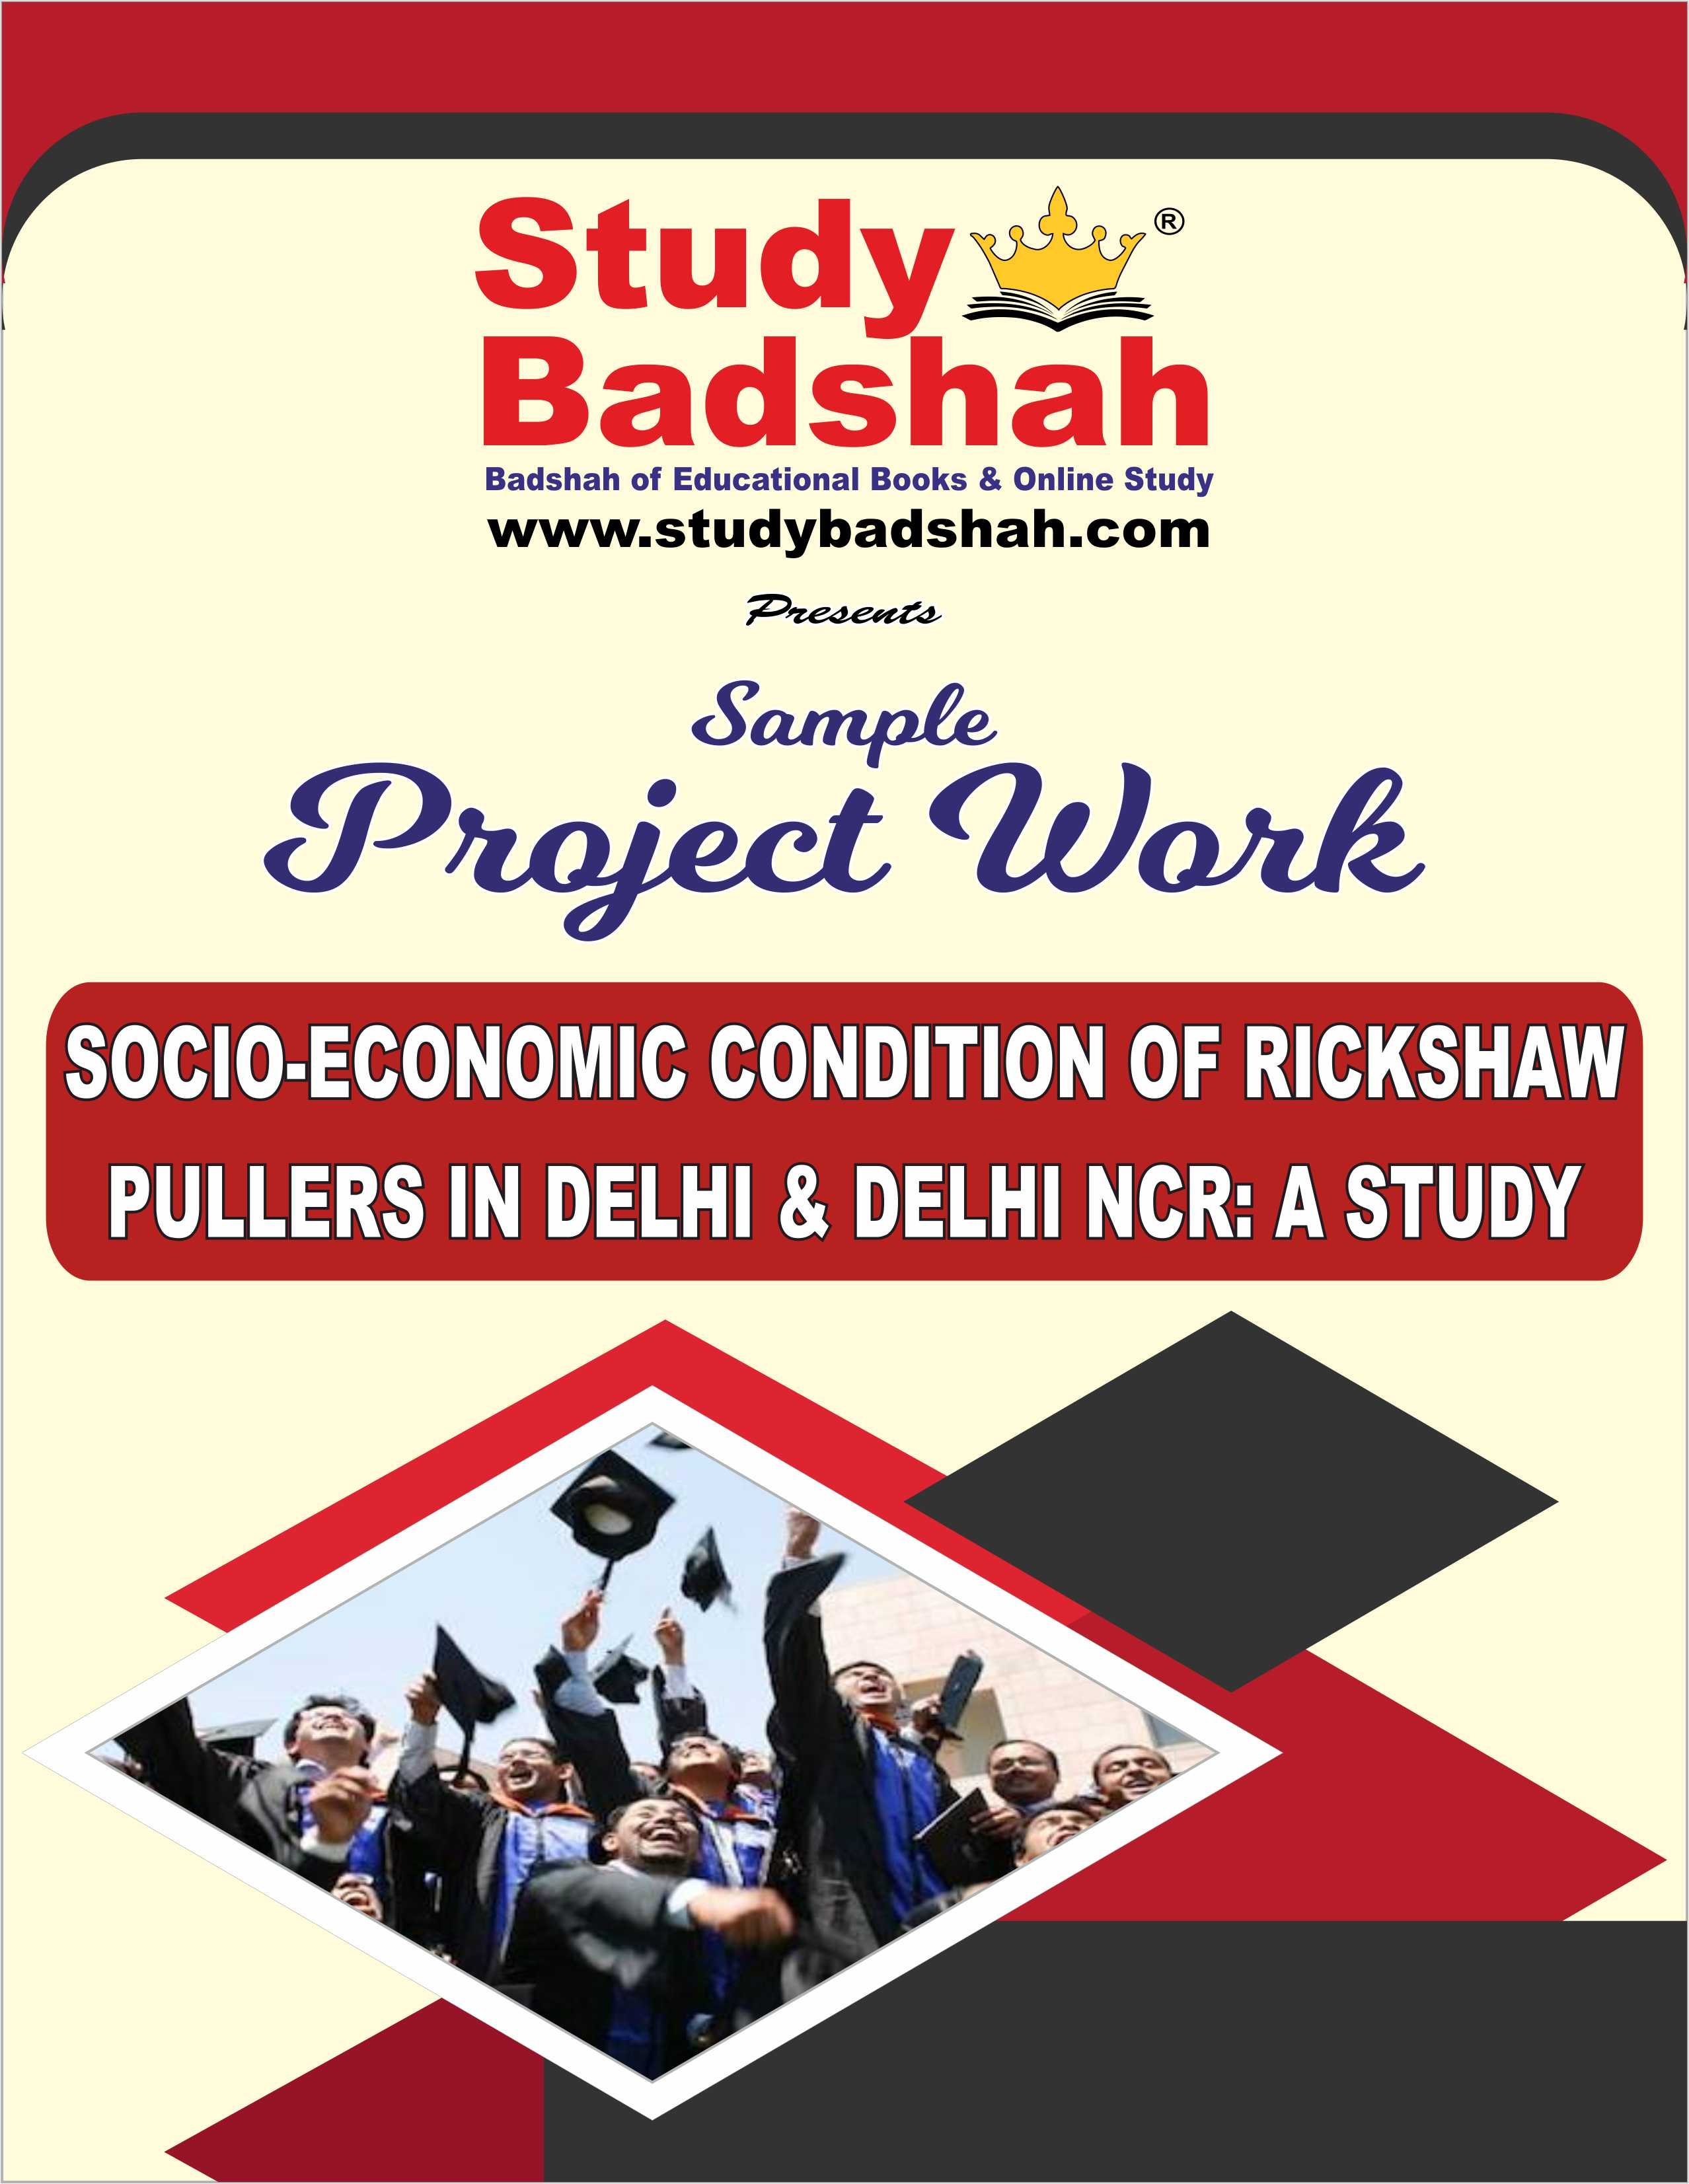 SOCIO-ECONOMIC CONDITION OF RICKSHAW PULLERS IN DELHI AND NCR A STUDY